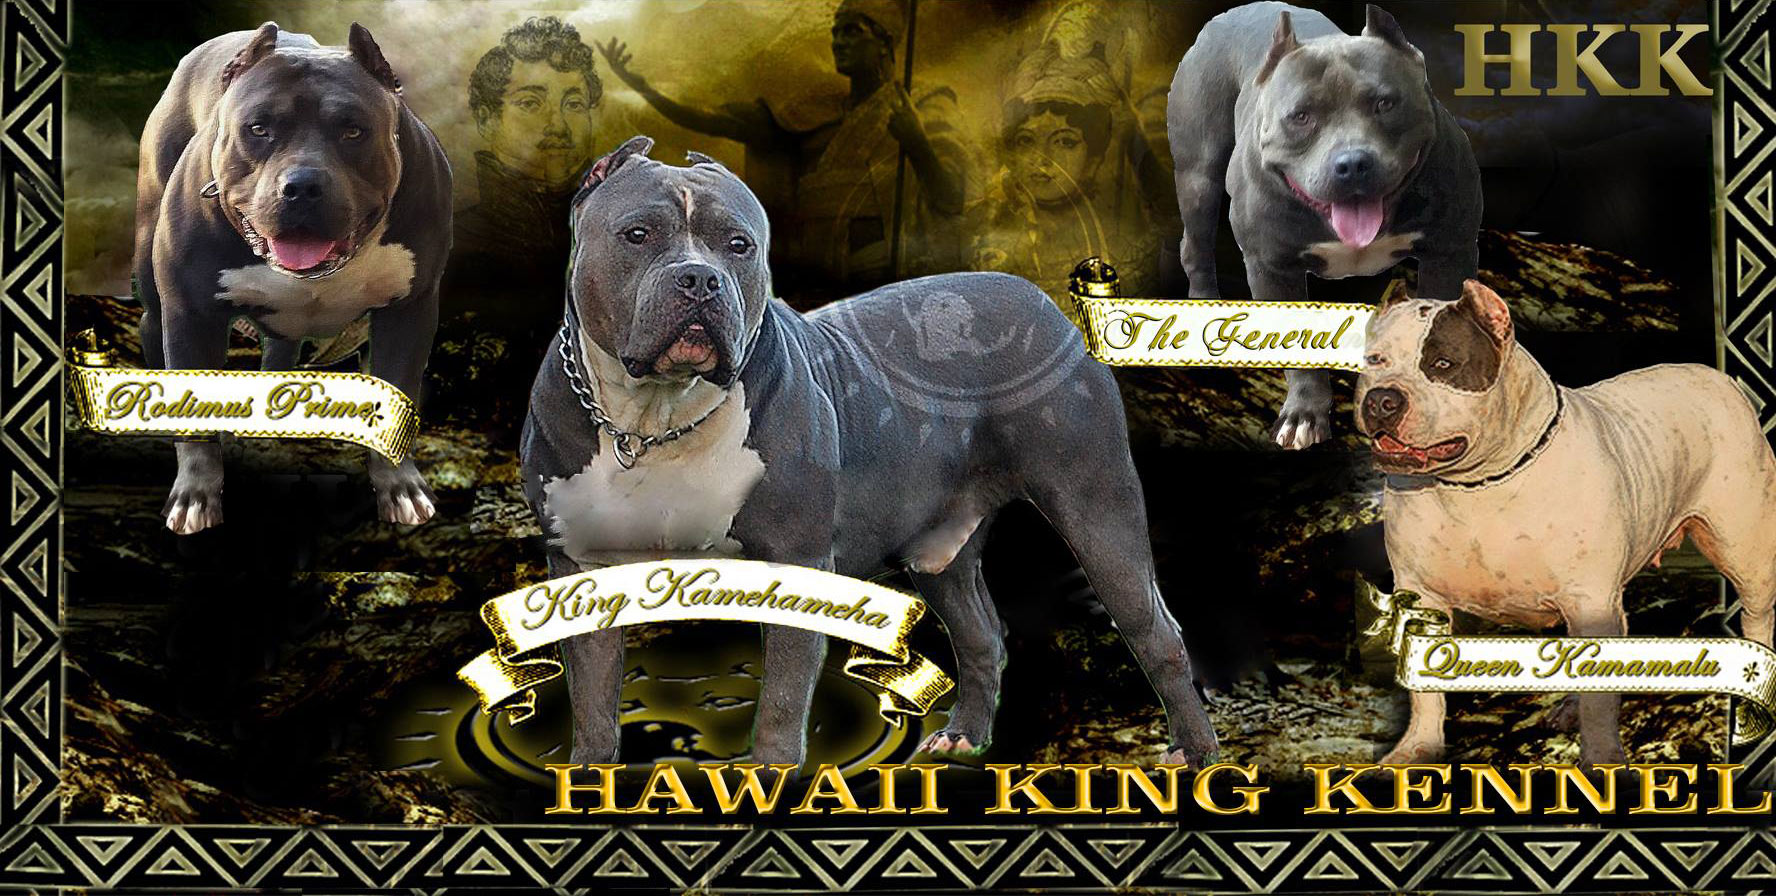 Blue Nose Pitbull Puppies For Sale | Hawaii King Kennels